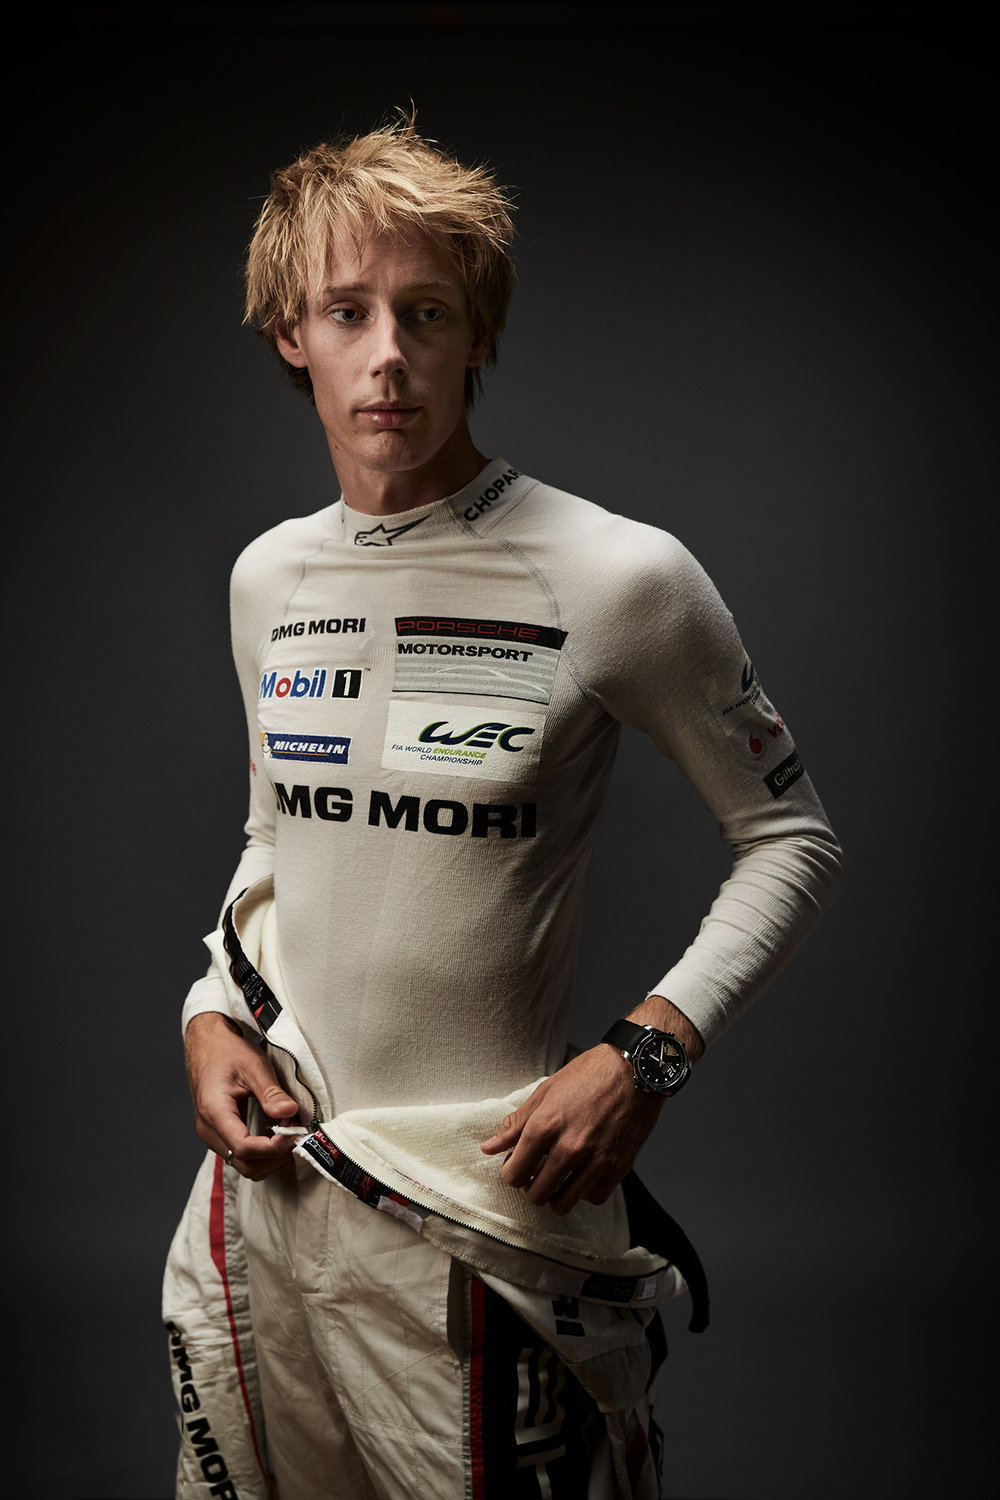 Driver Brendon Hartley photographed by Chris Floyd represented by Flock